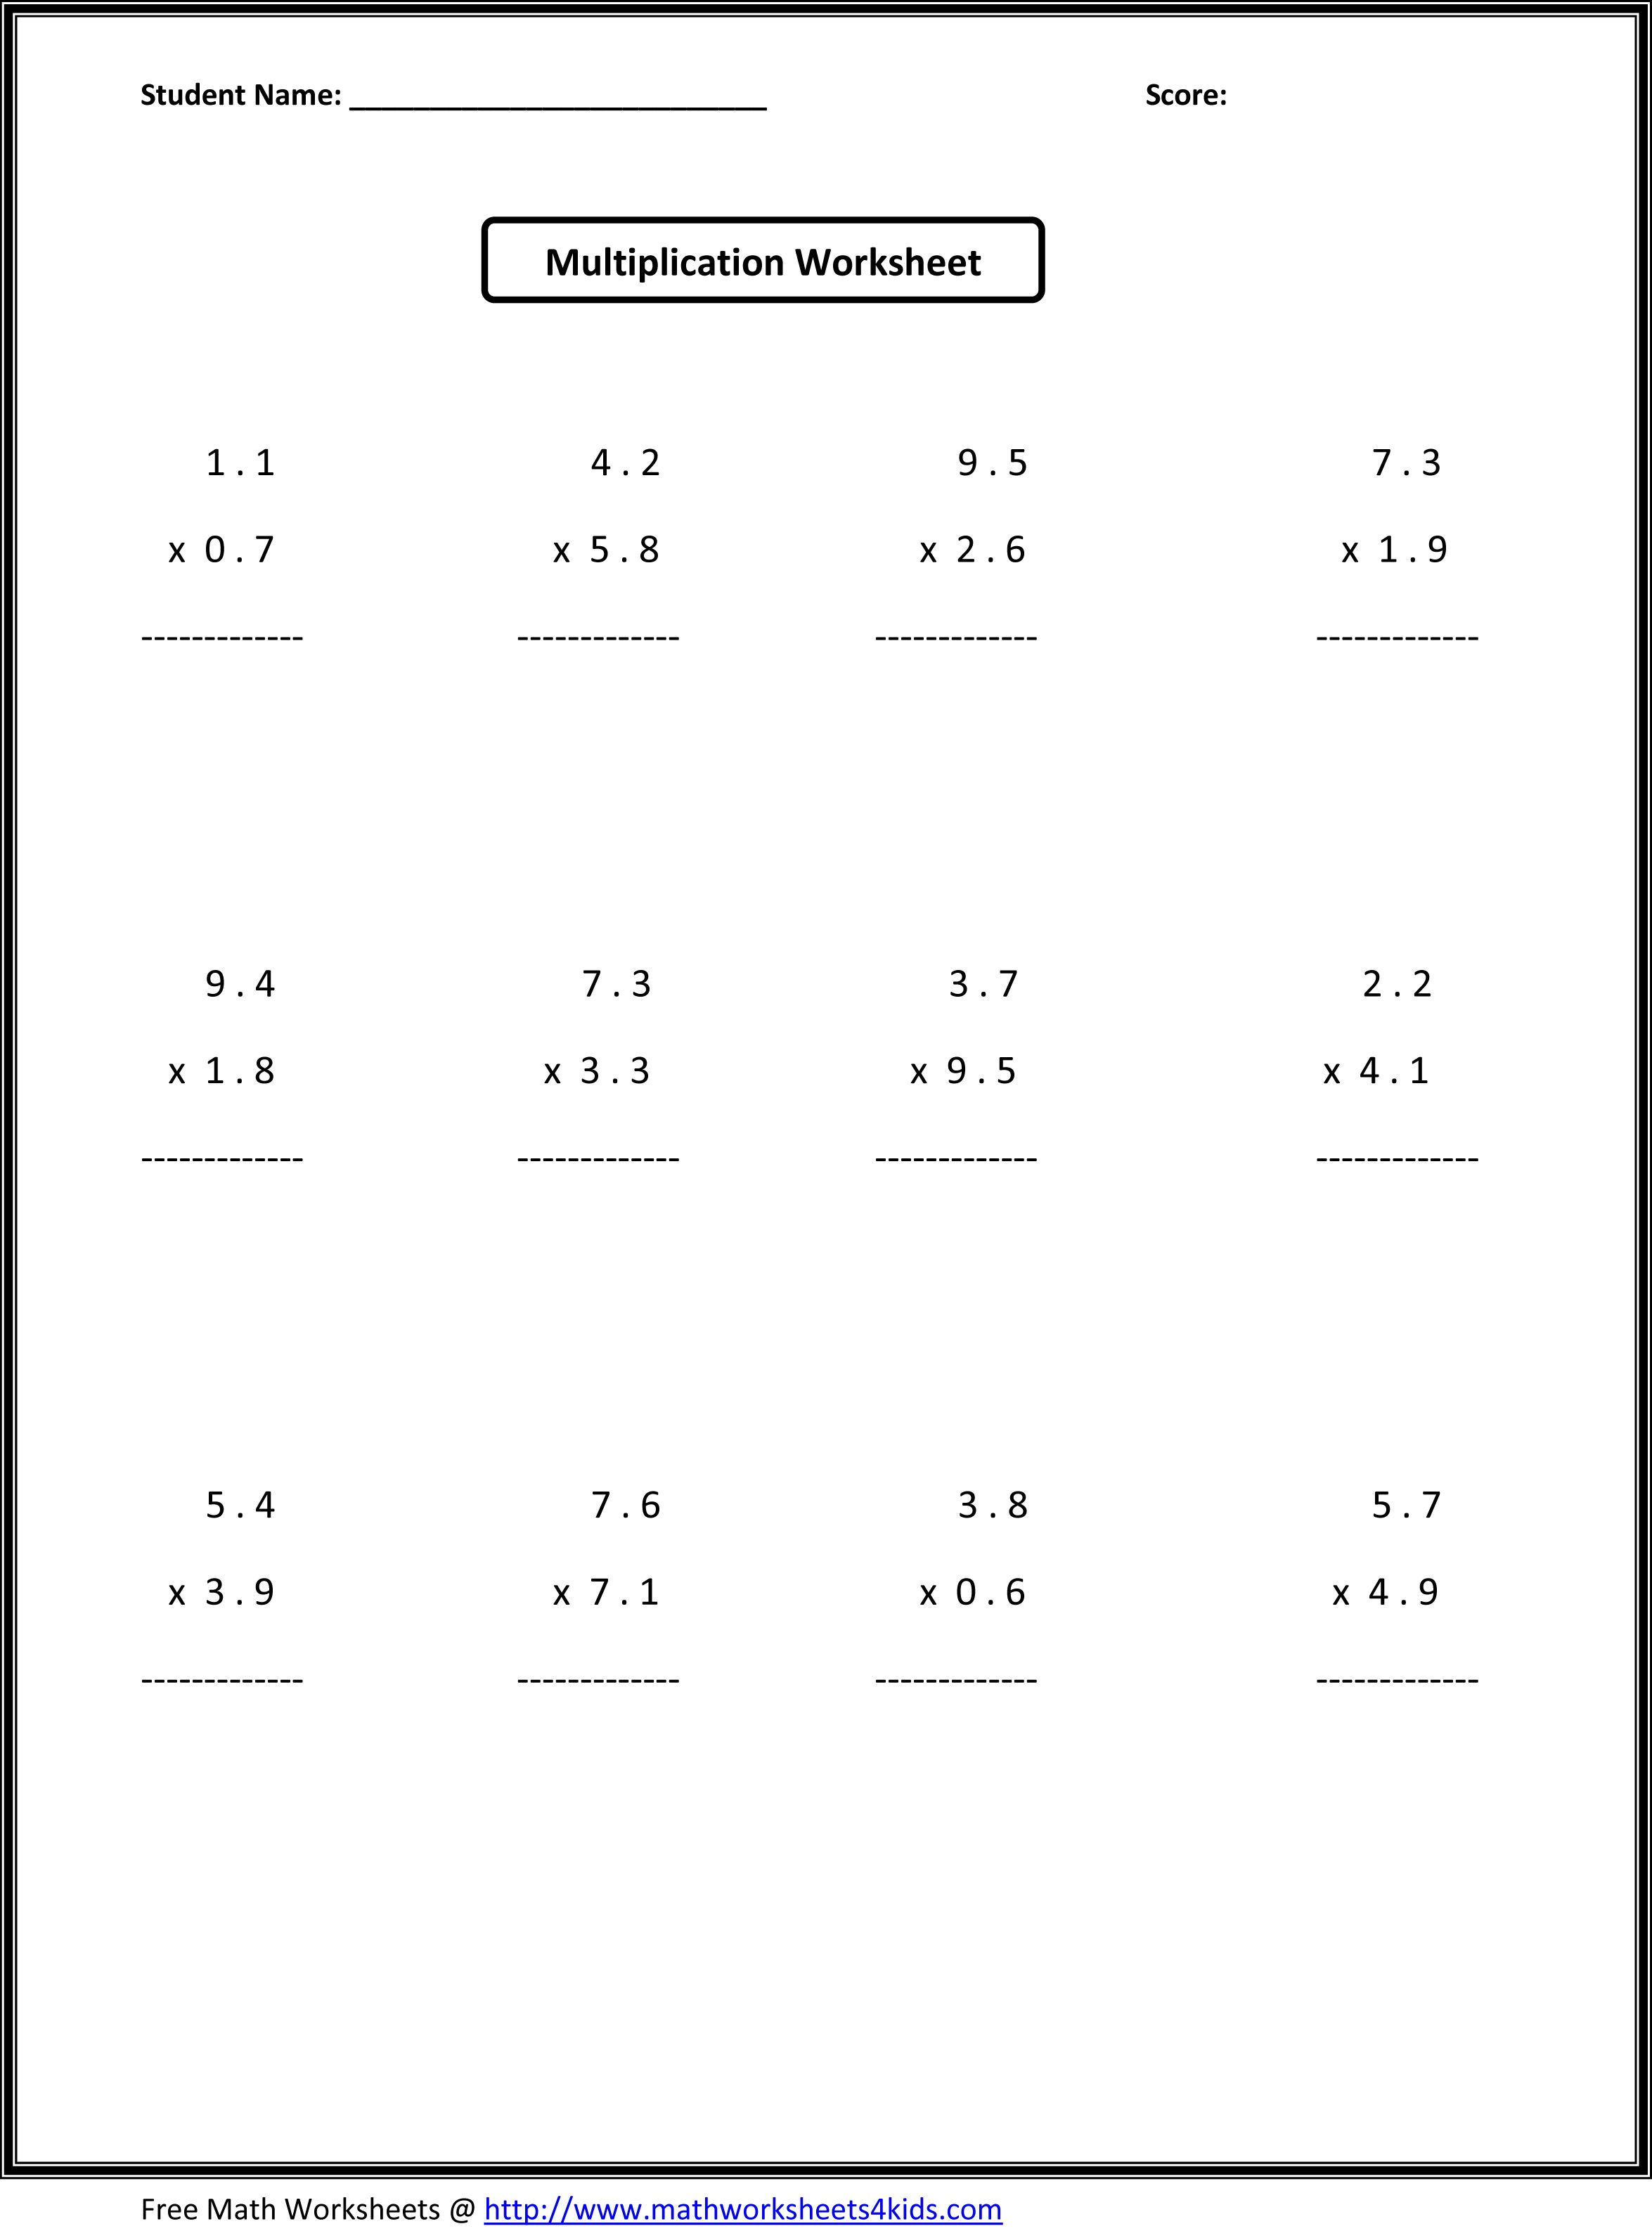 Printables 6th Grade Math Worksheets Algebra 7th grade algebra worksheets math places sixth have ratio multiplying and dividing fractions algebraic expressions equations inequalities geomet